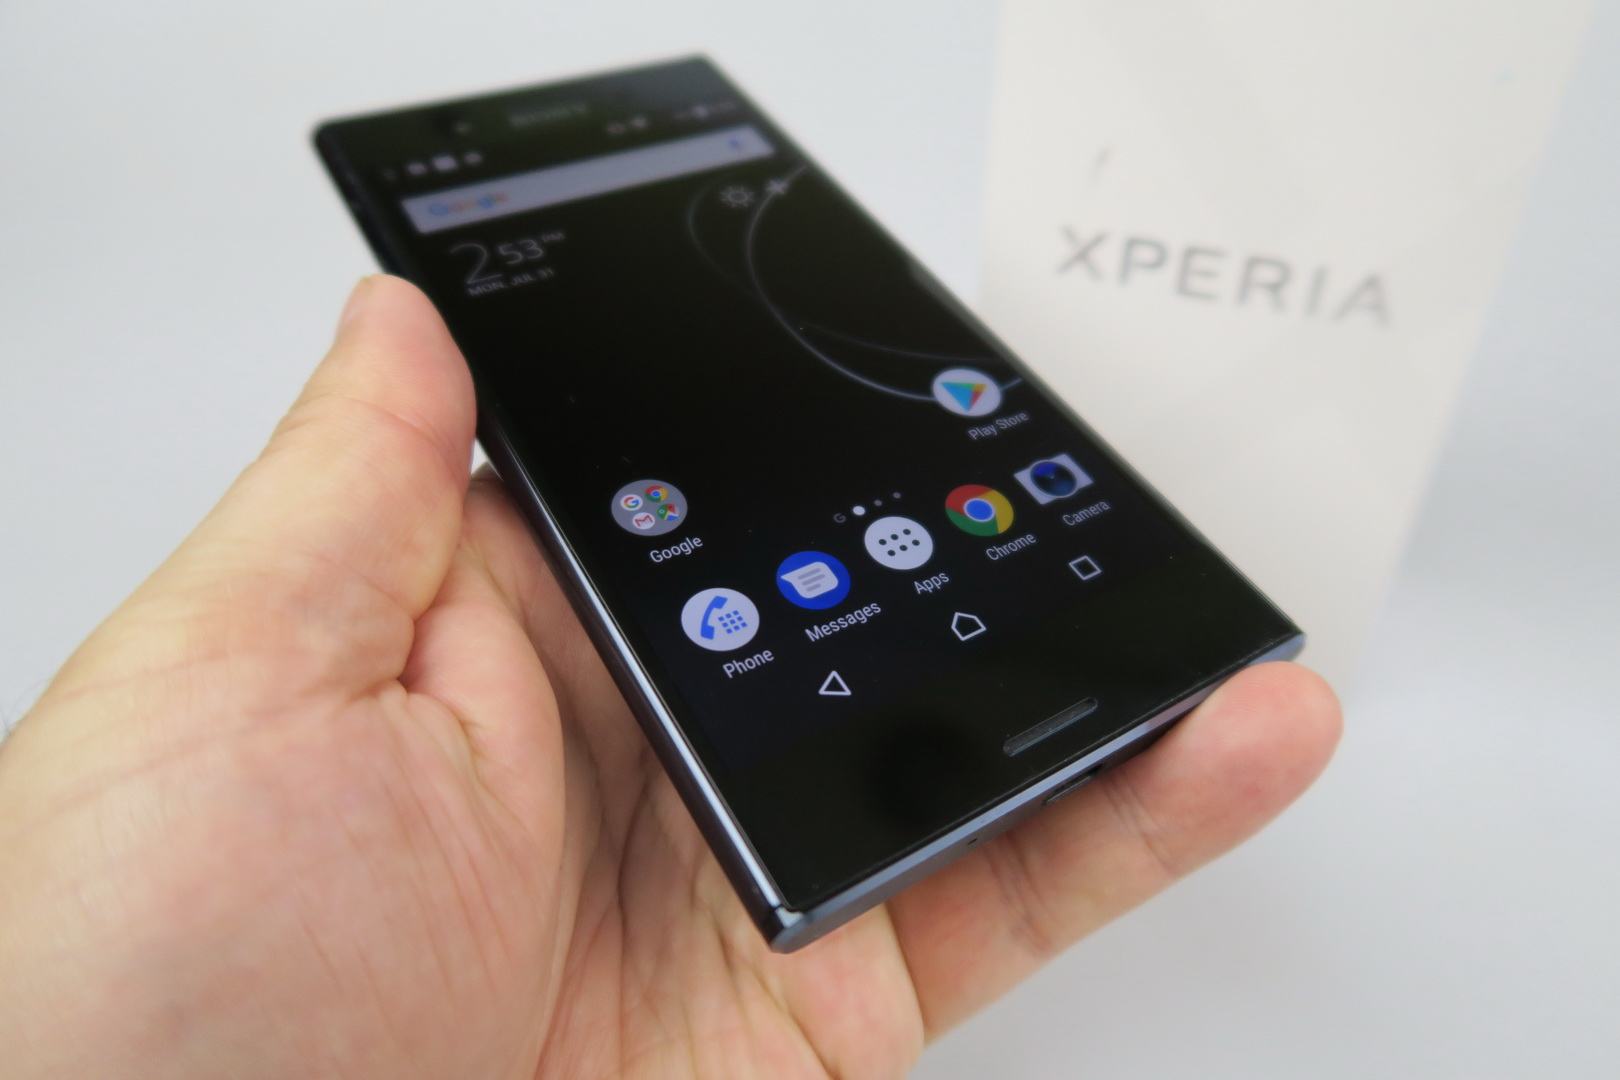 Sony xperia xperia xz premium unboxing 4k hdr waterproof machine try watching this video on youtube or enable javascript if it is disabled in your browser advertisement tags sony xperia ccuart Gallery